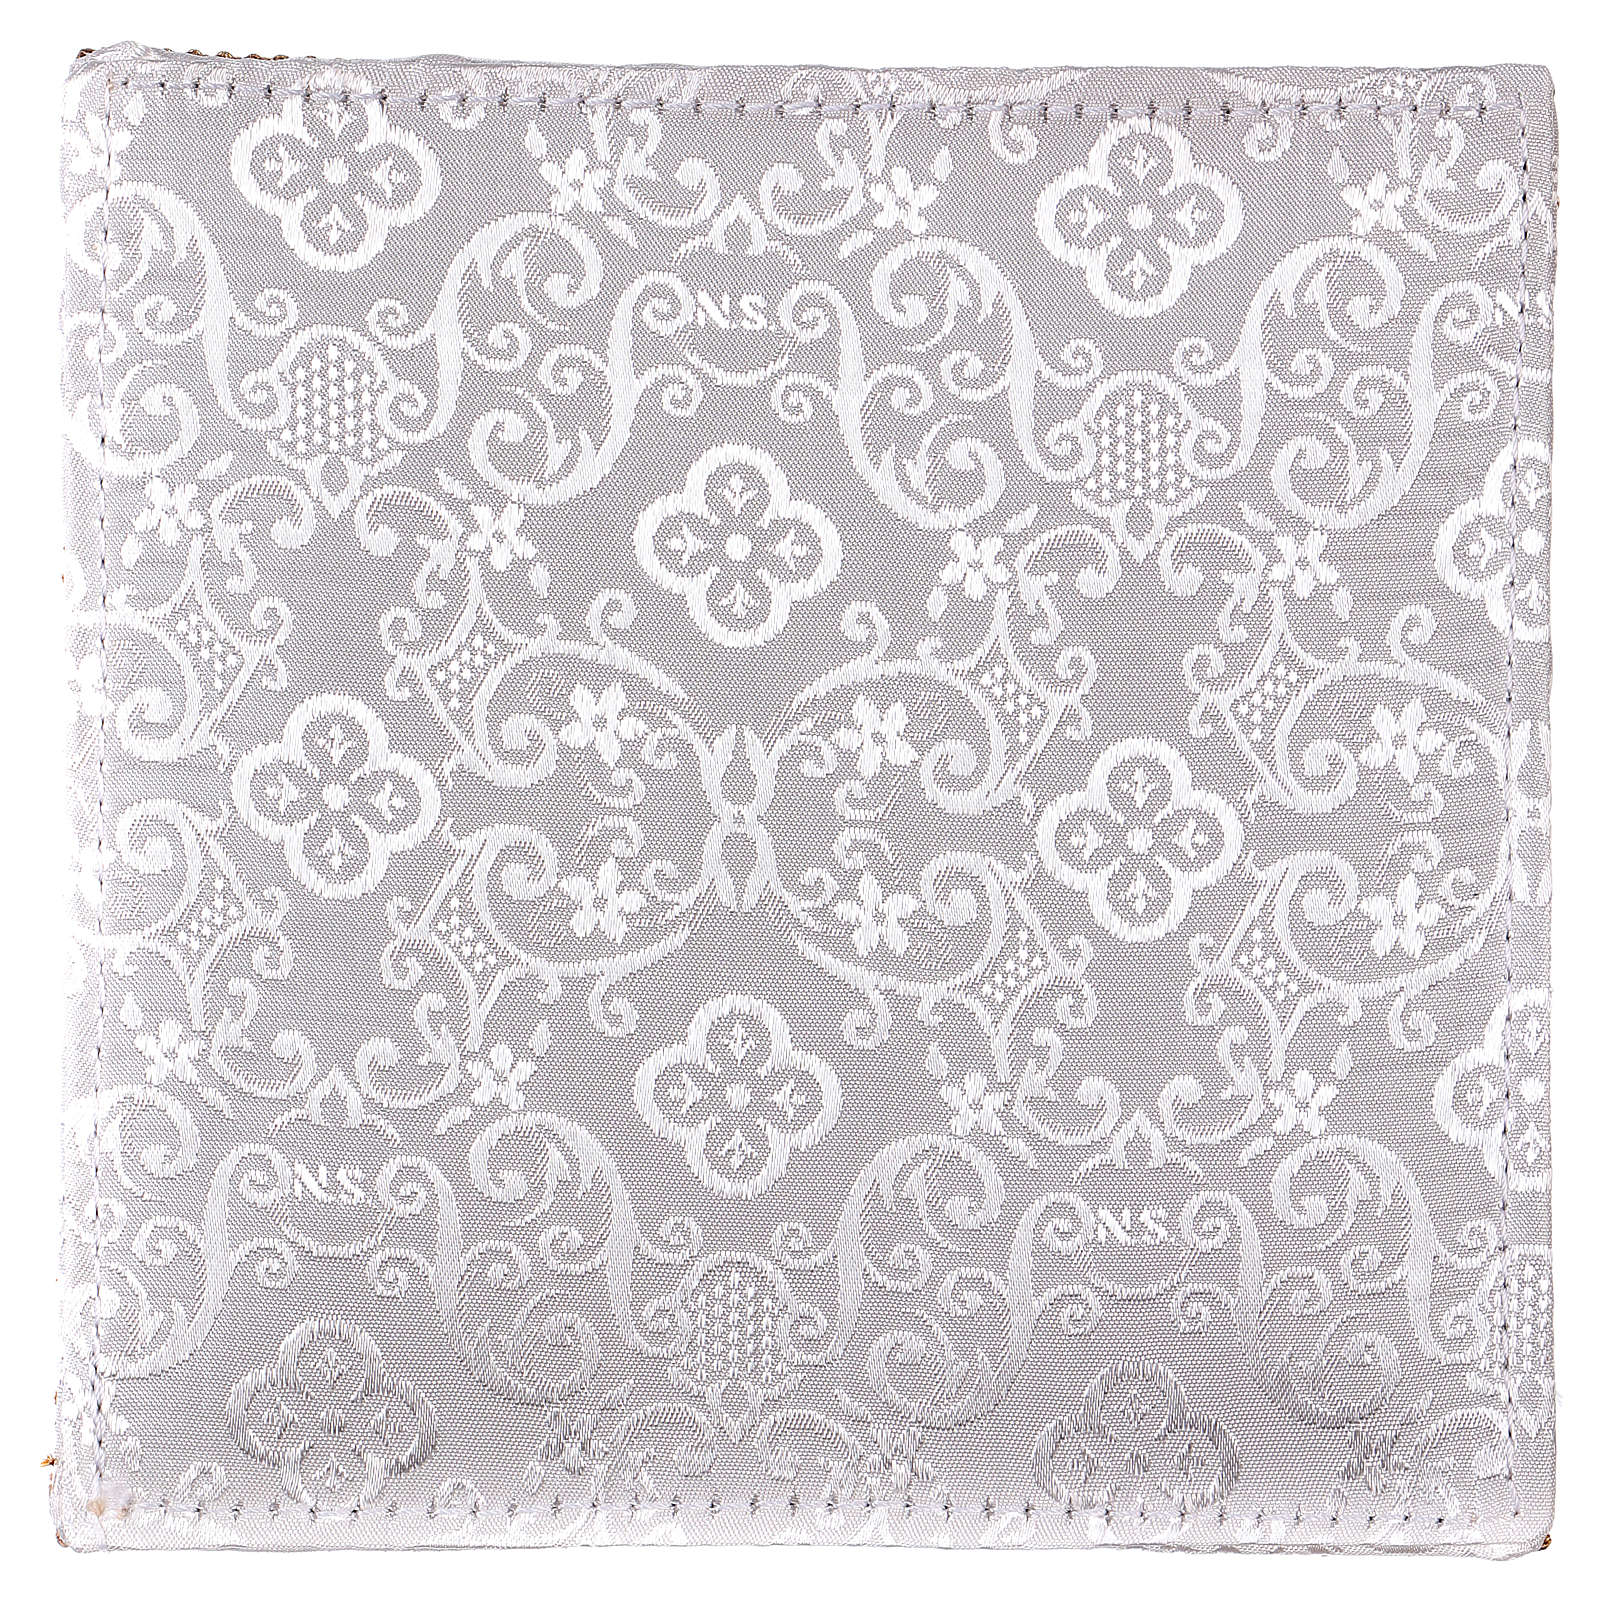 Chalice veil (pall) with Xp, wheat and grapes embroidery on white damask fabric 4